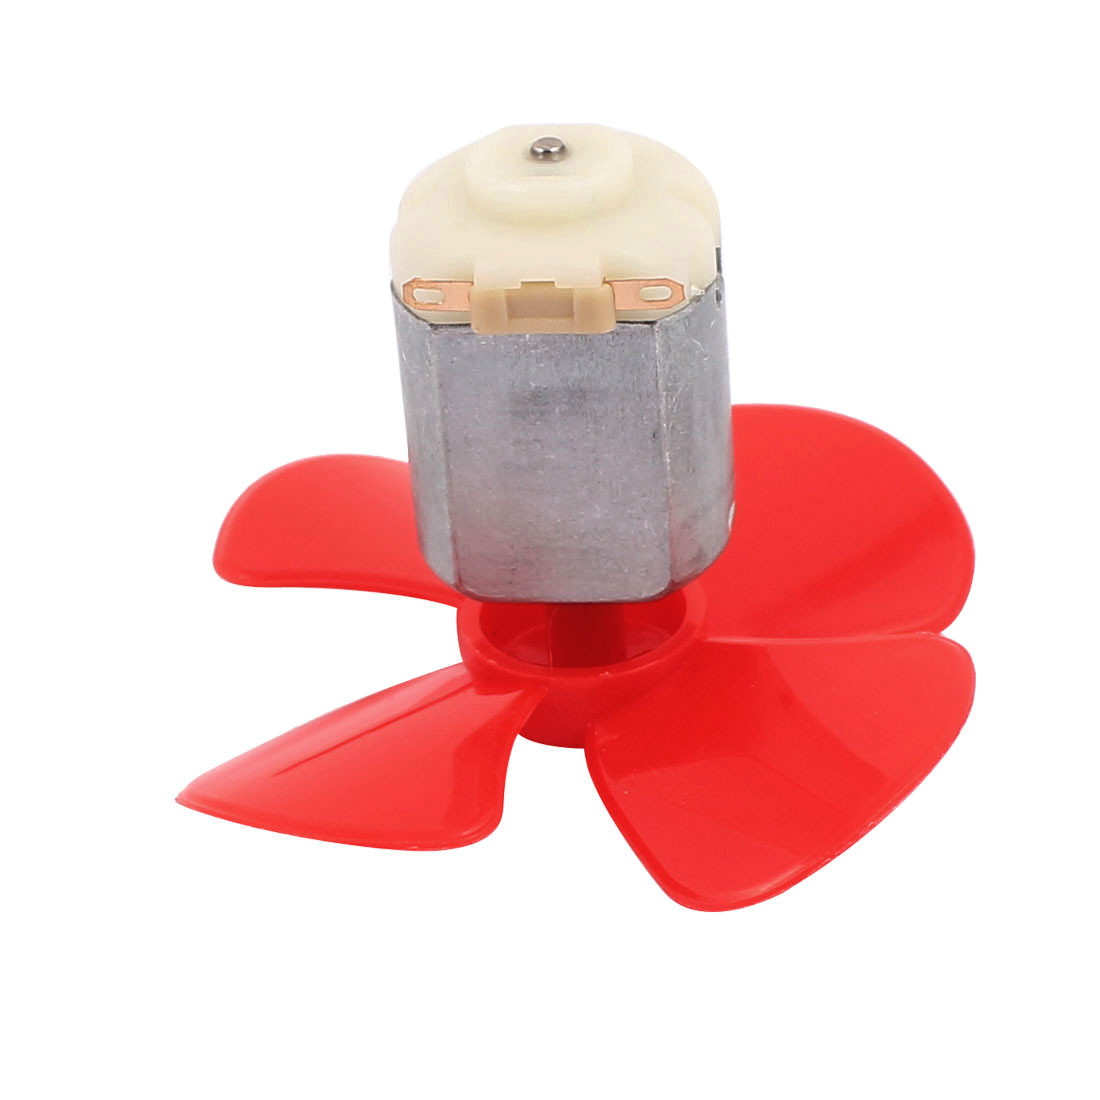 2Pcs DC12V 0.04A 14000RPM Aircraft Model Motor 4-vane Propeller 56mmx2mm - image 1 of 5